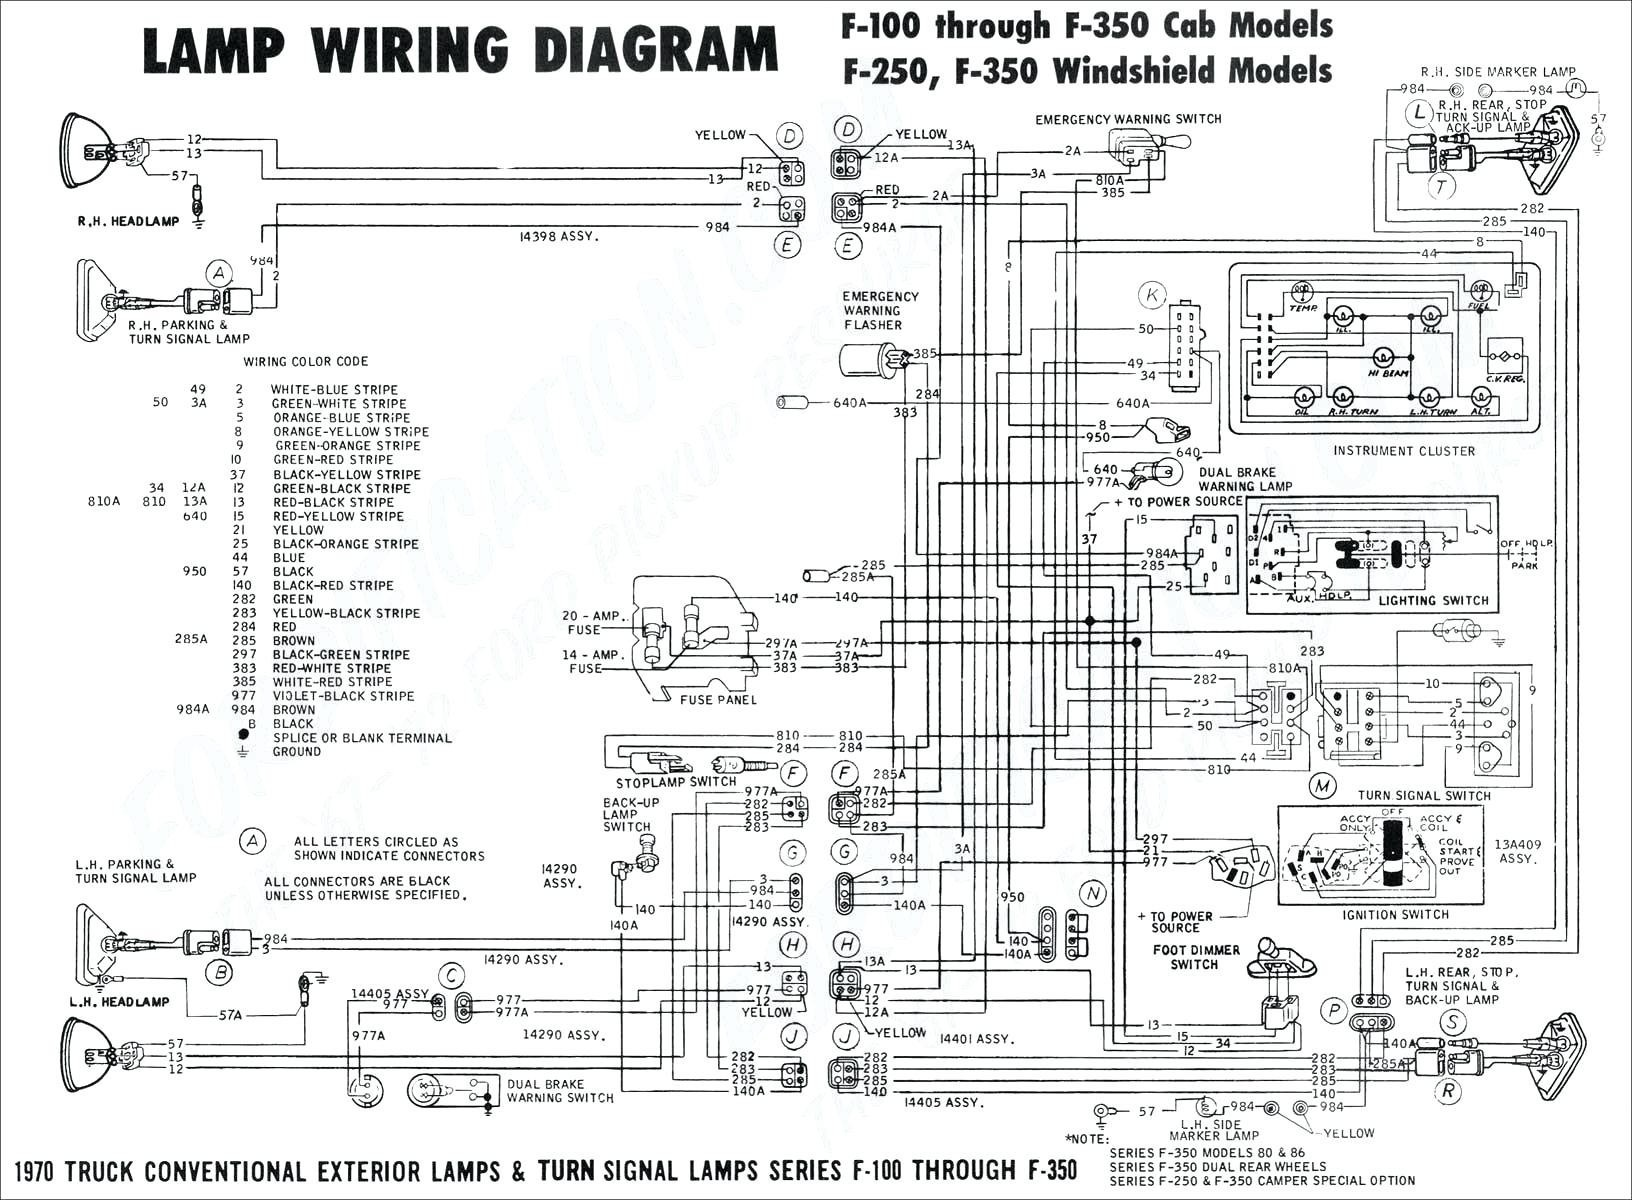 2006 Mini Cooper Engine Diagram 94 F350 Wiring Diagrams Layout Wiring Diagrams • Of 2006 Mini Cooper Engine Diagram